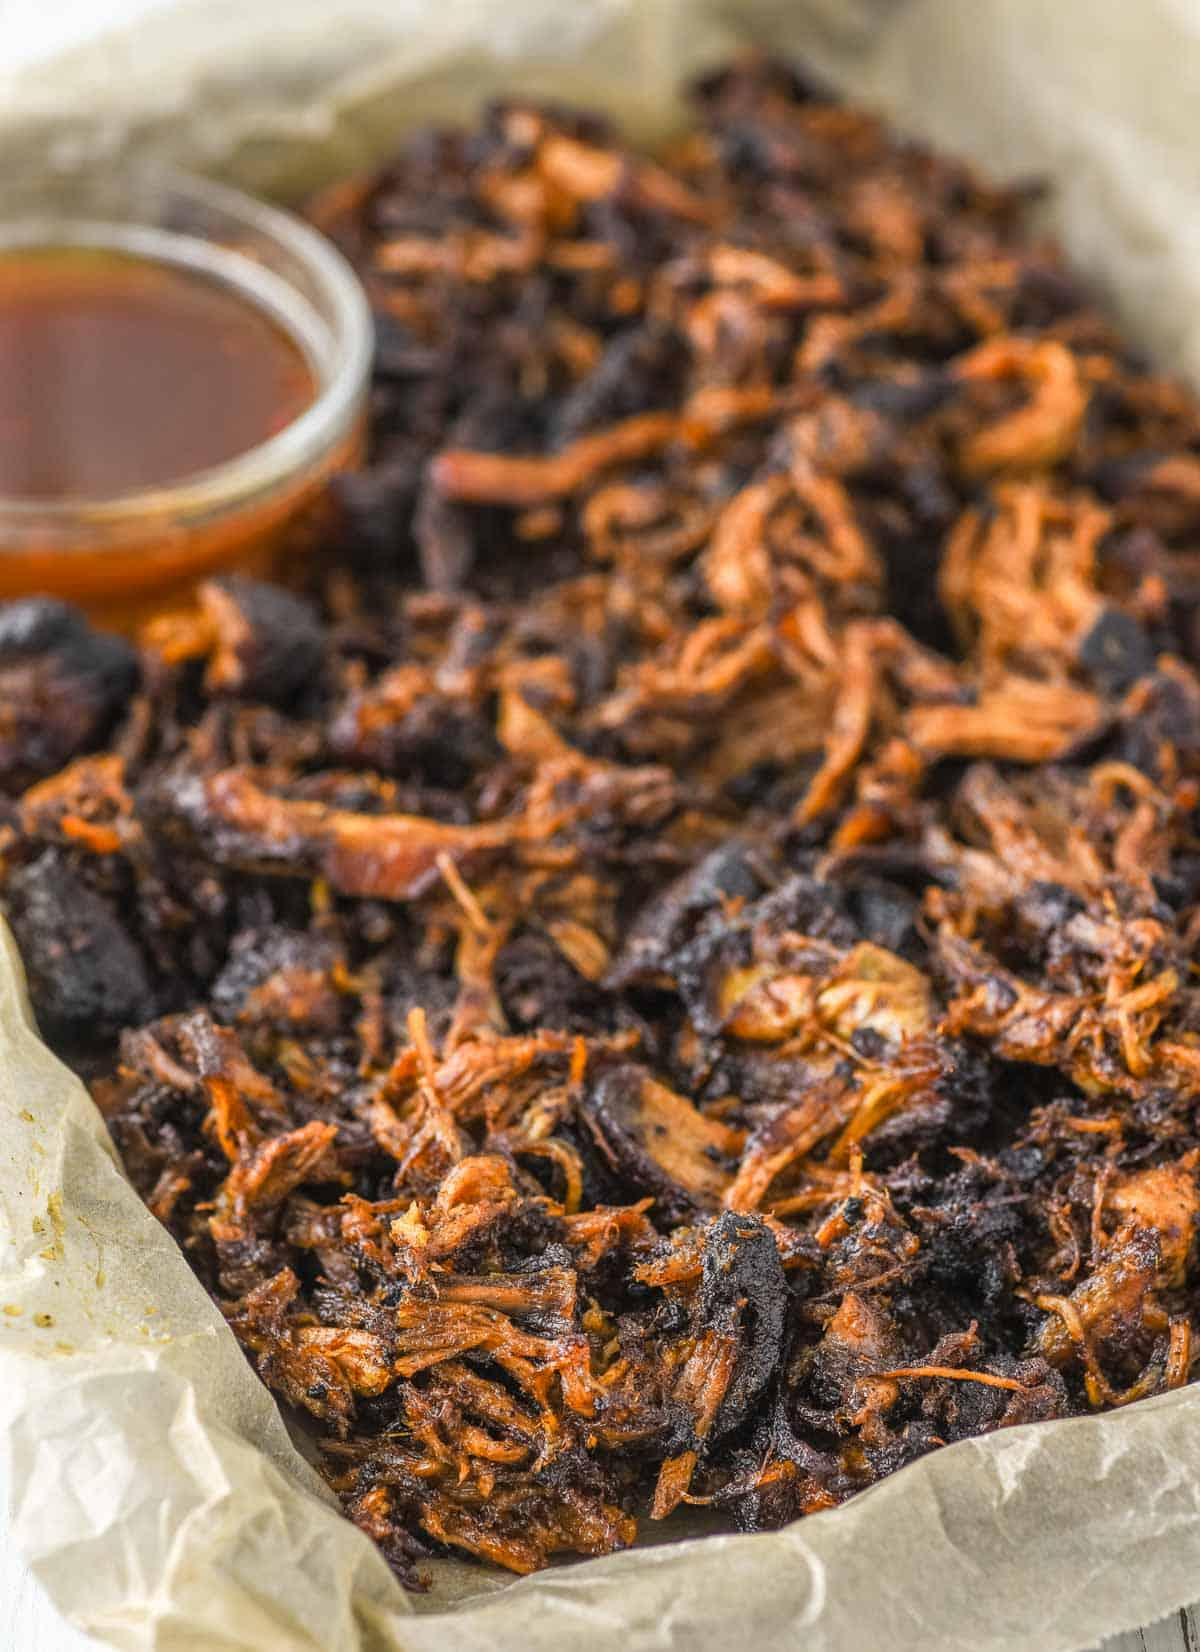 oven roasted pulled pork in pan lined with parchment paper with glass bowl of bbq sauce